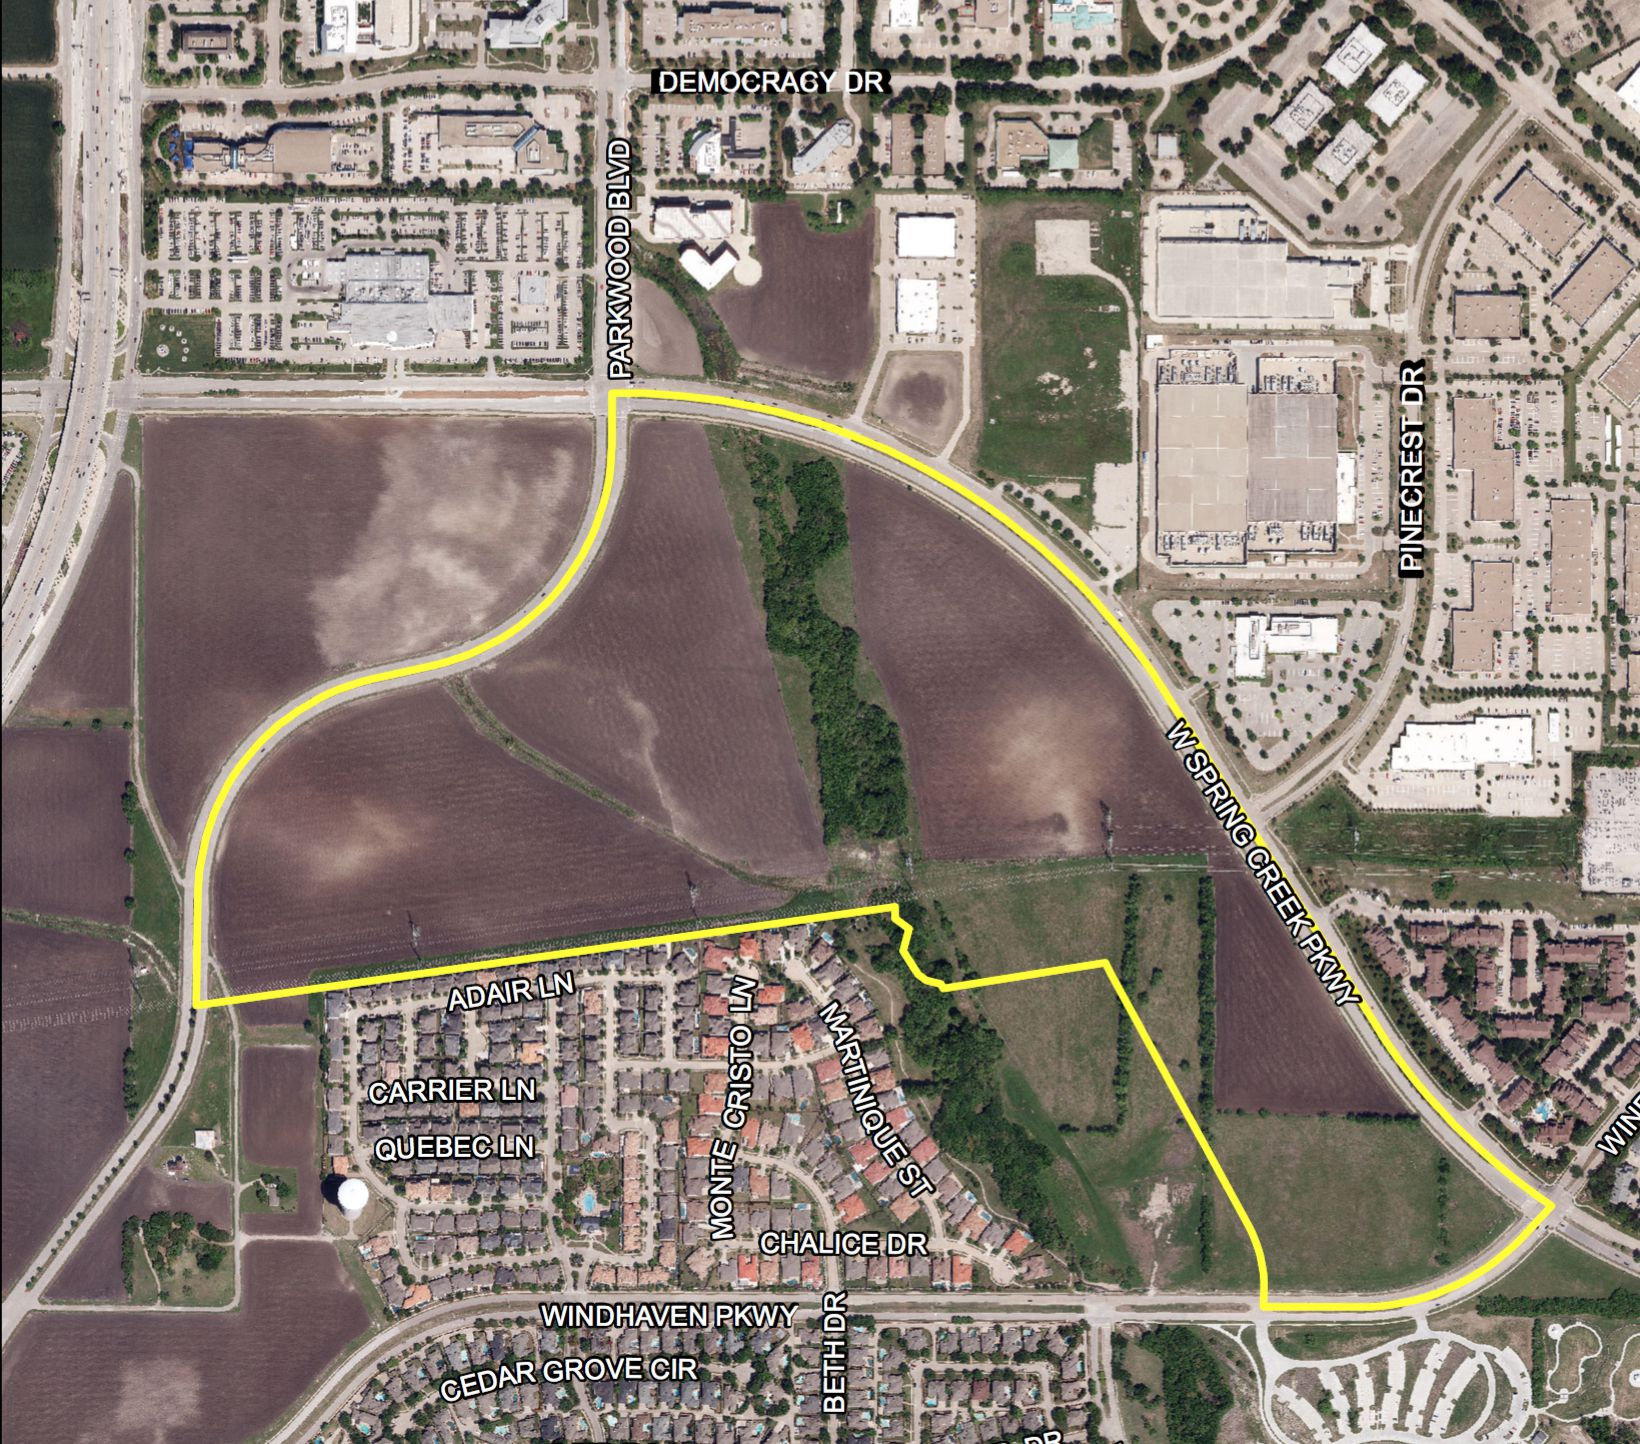 The Haggard development site is along Spring Creek Parkway just east of the Dallas North Tollway.